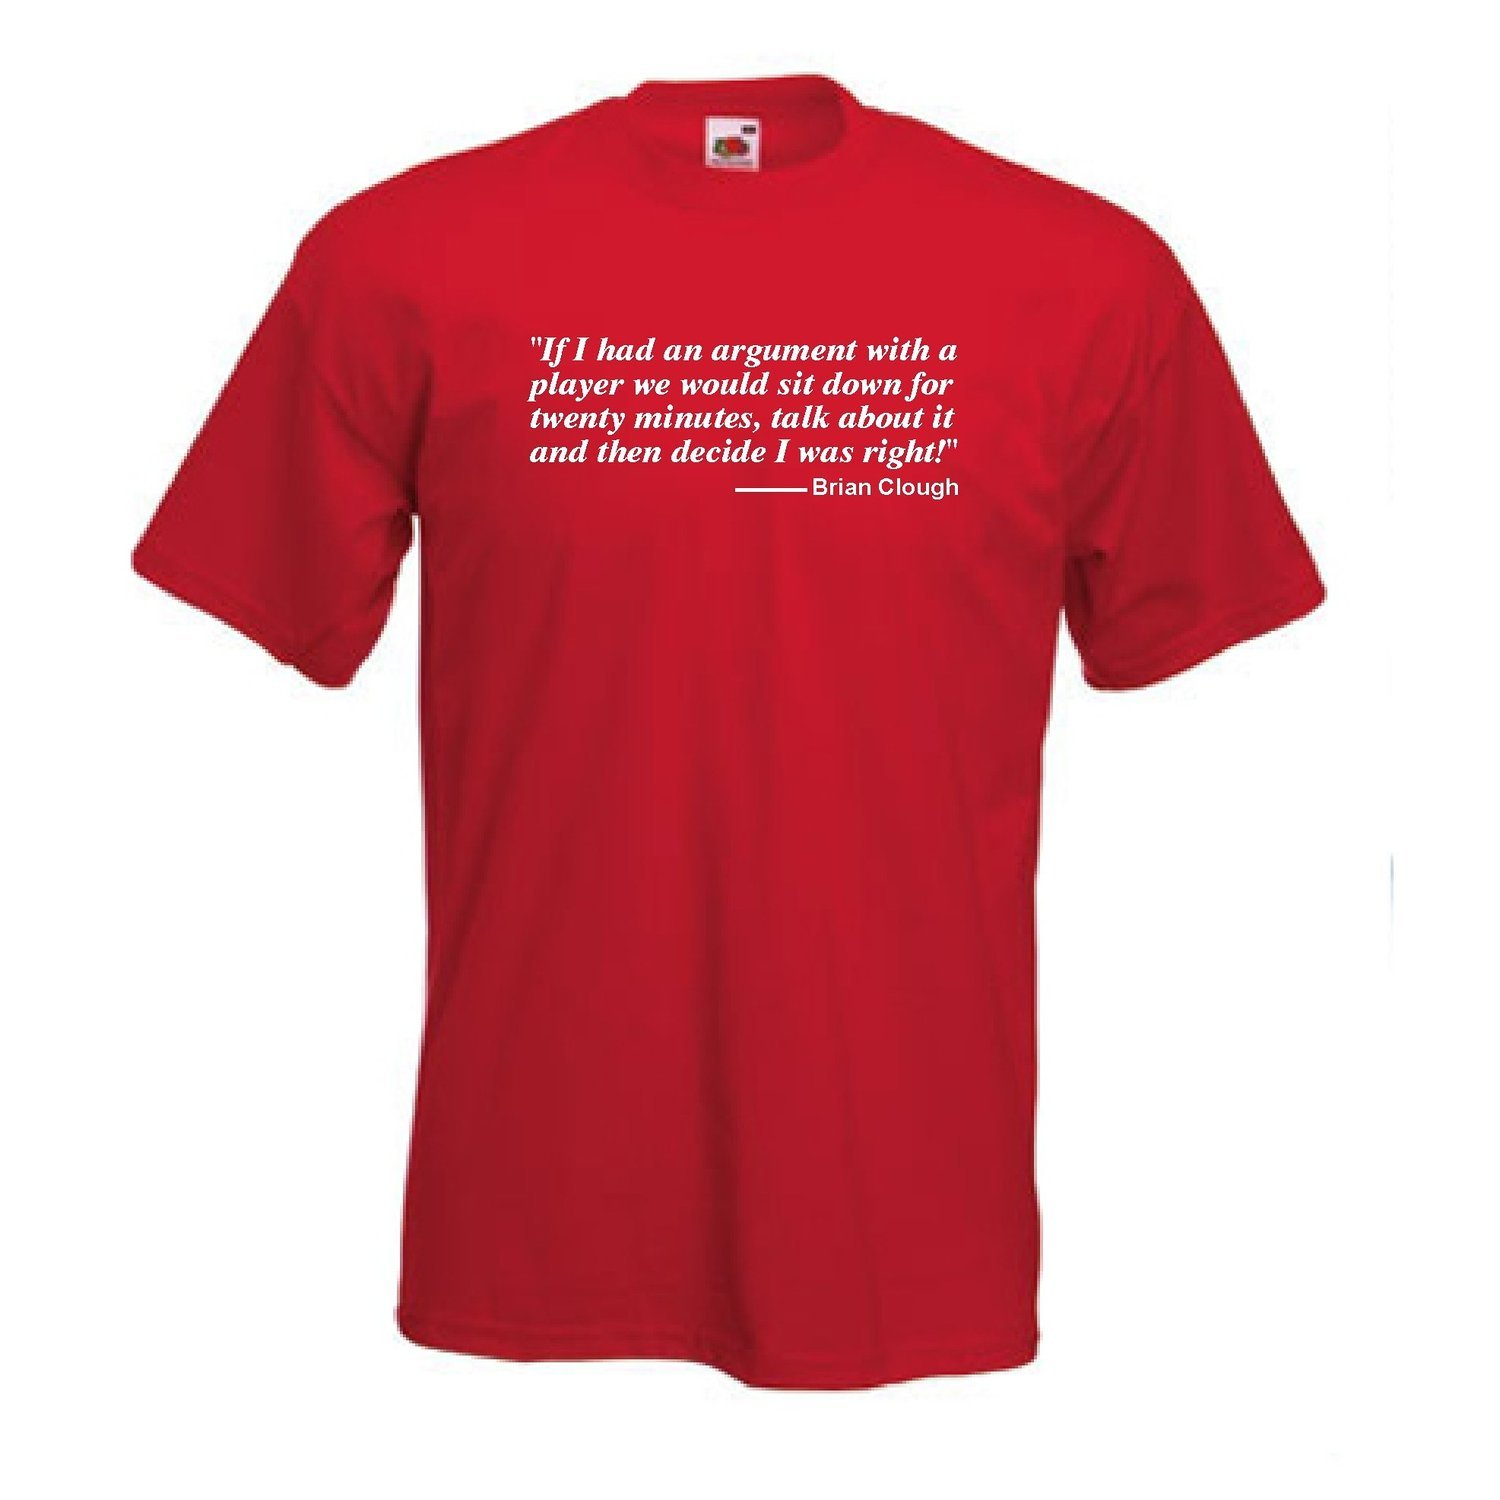 Invicta Screen Printers Brian Clough Of Nottingham Forest 'Argument.I'm Right' Quote Football T-Shirt